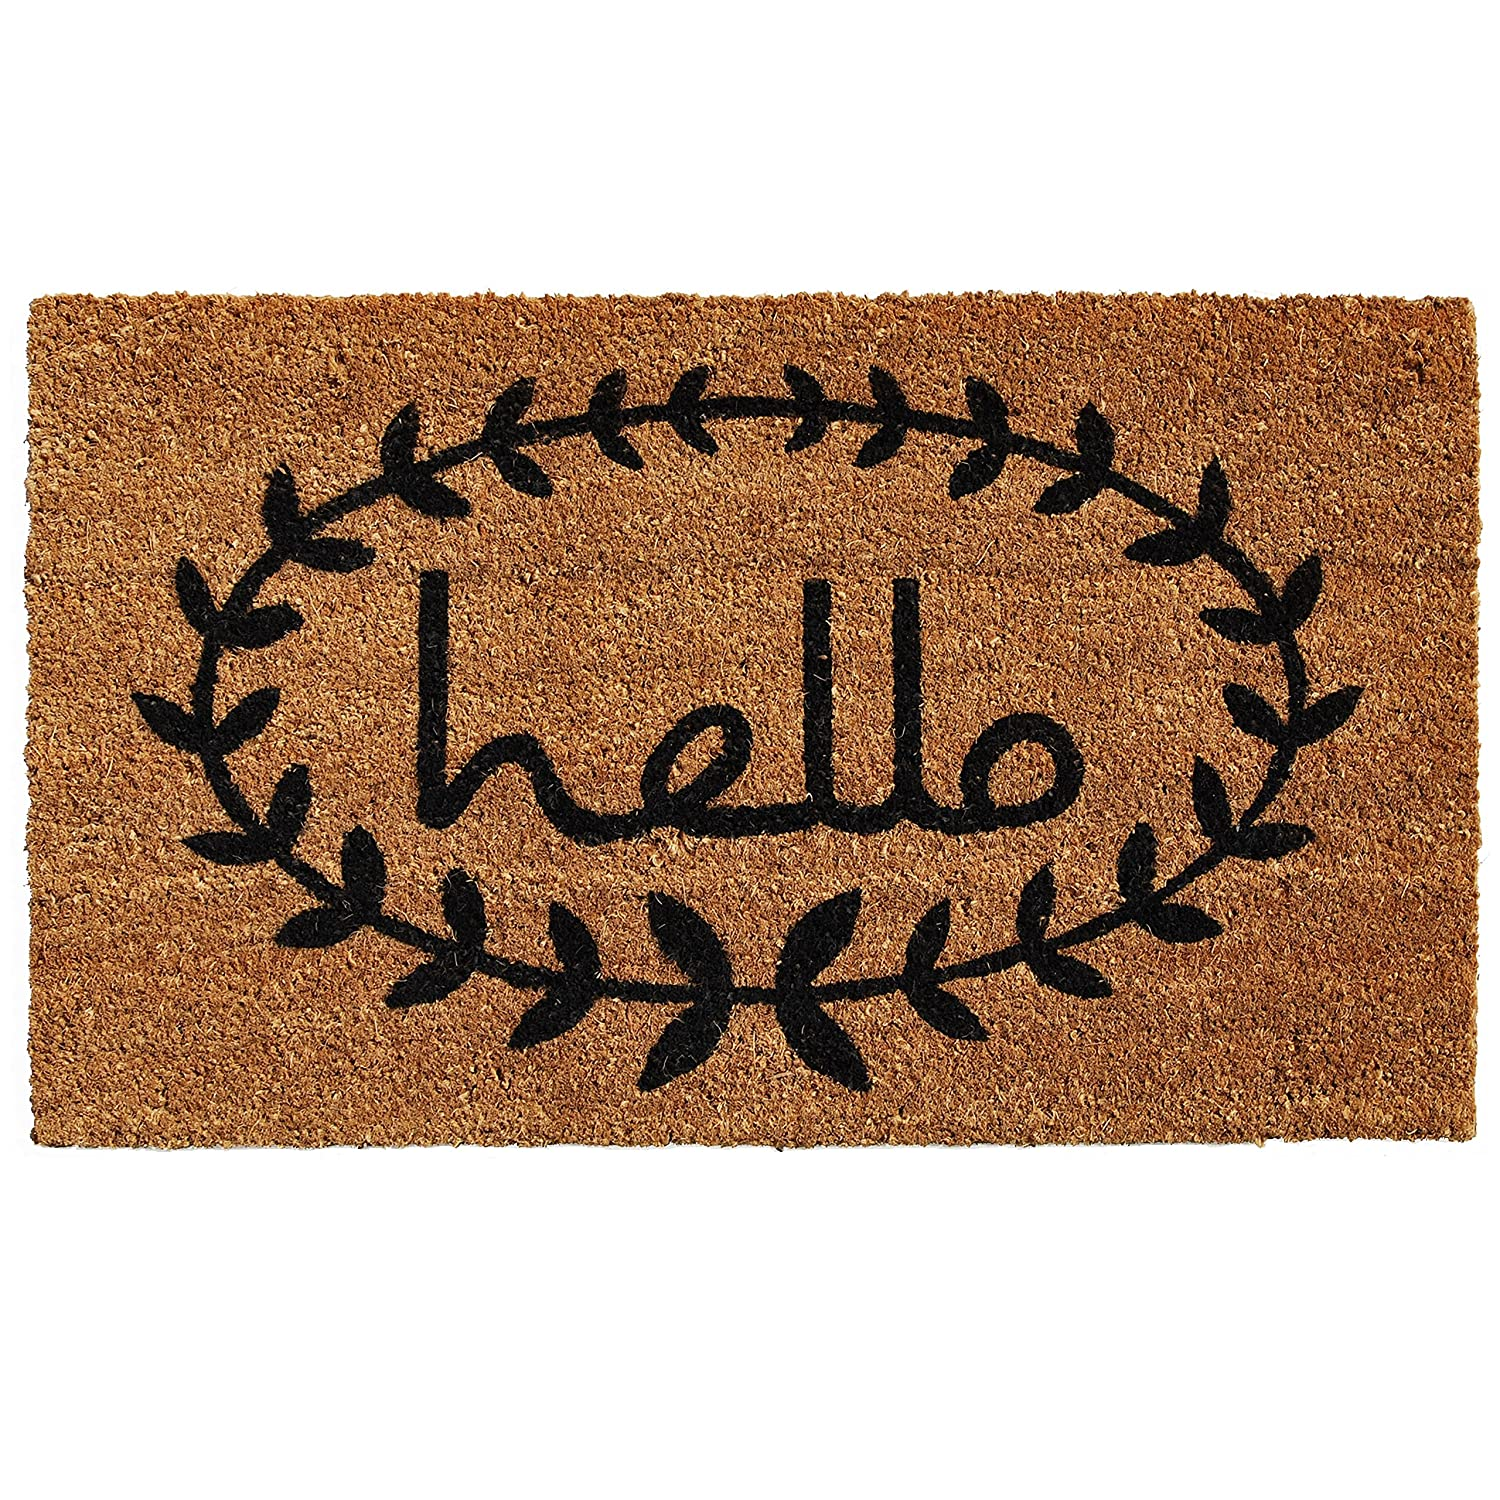 door beaches pin cute custom pineapple decor mats welcome funny doormat personalized mat aloha